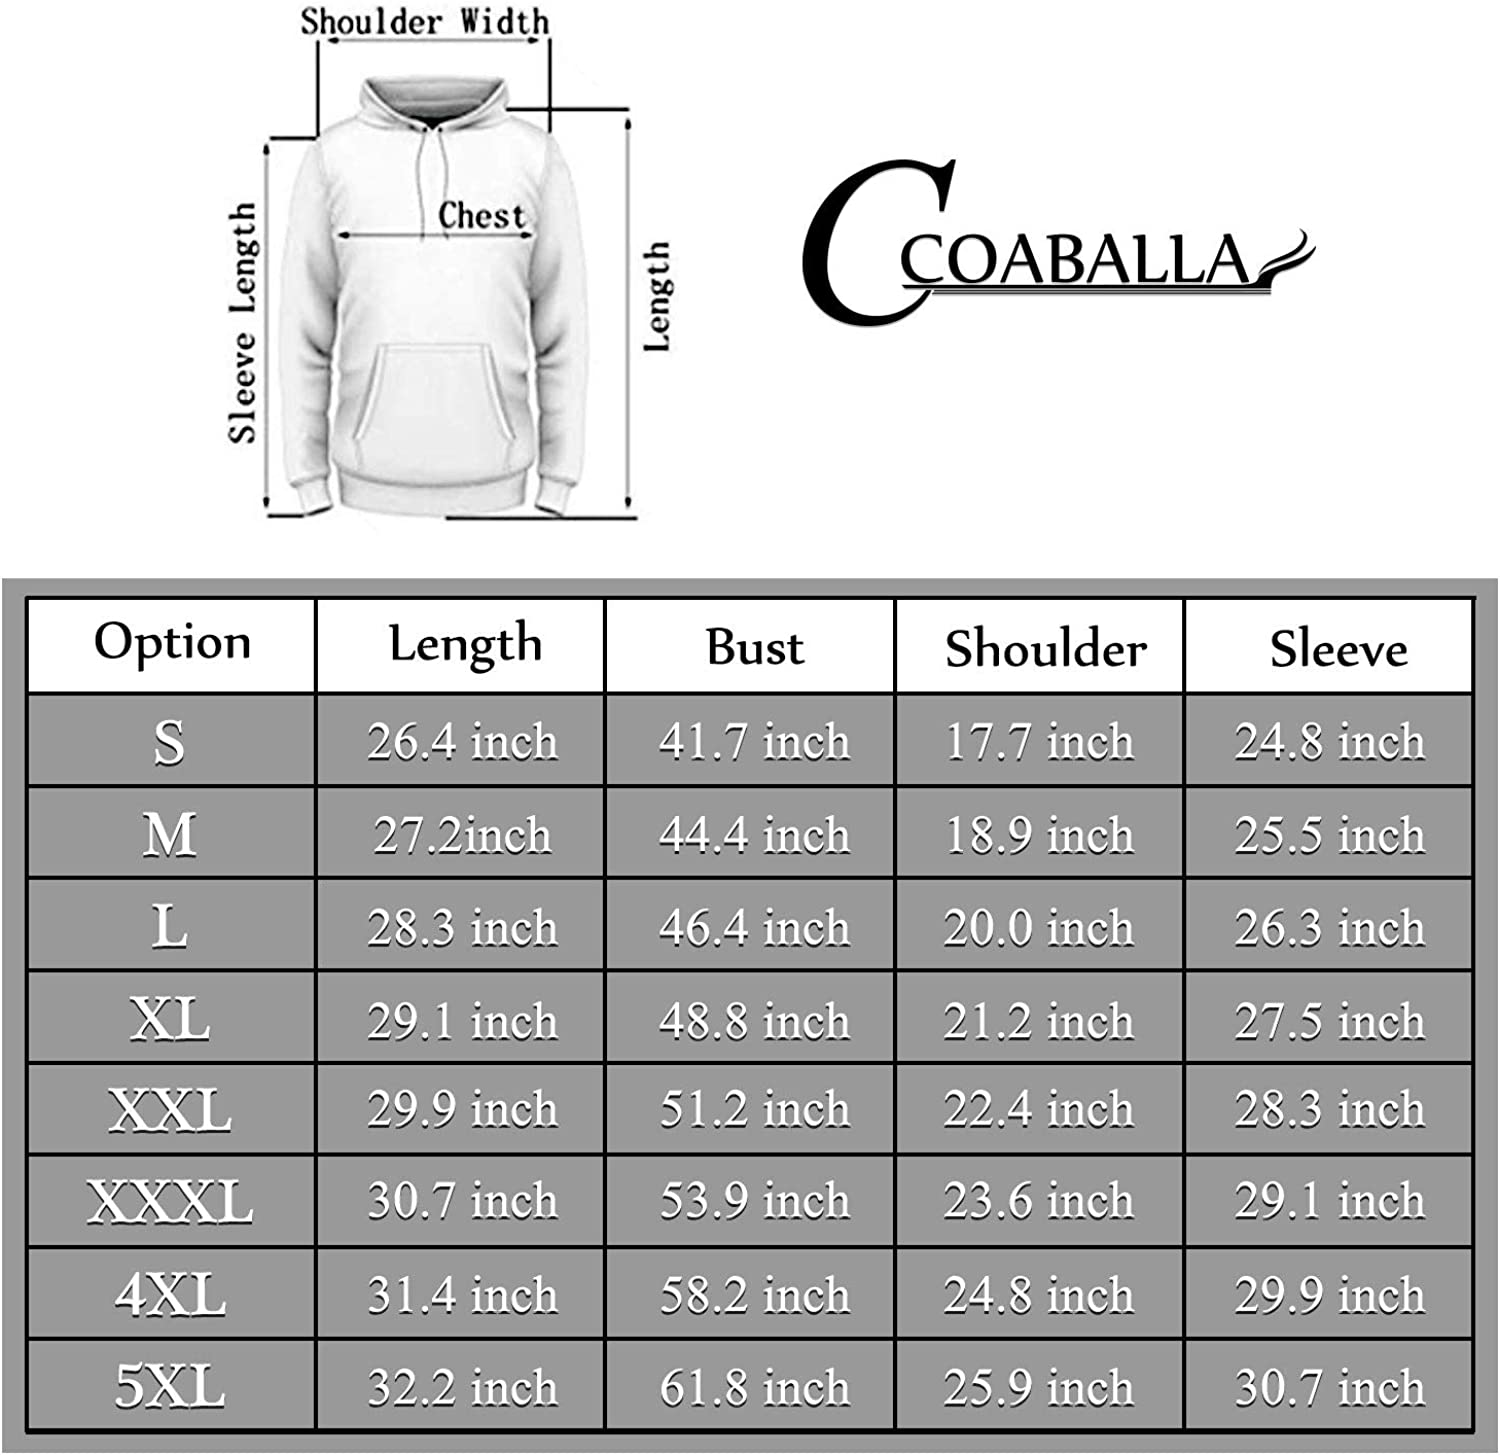 C COABALLA Snow Pattern Background Illustration Snow,Men//Womens Warm Outerwear Jackets and Hoodies Backgrounds S